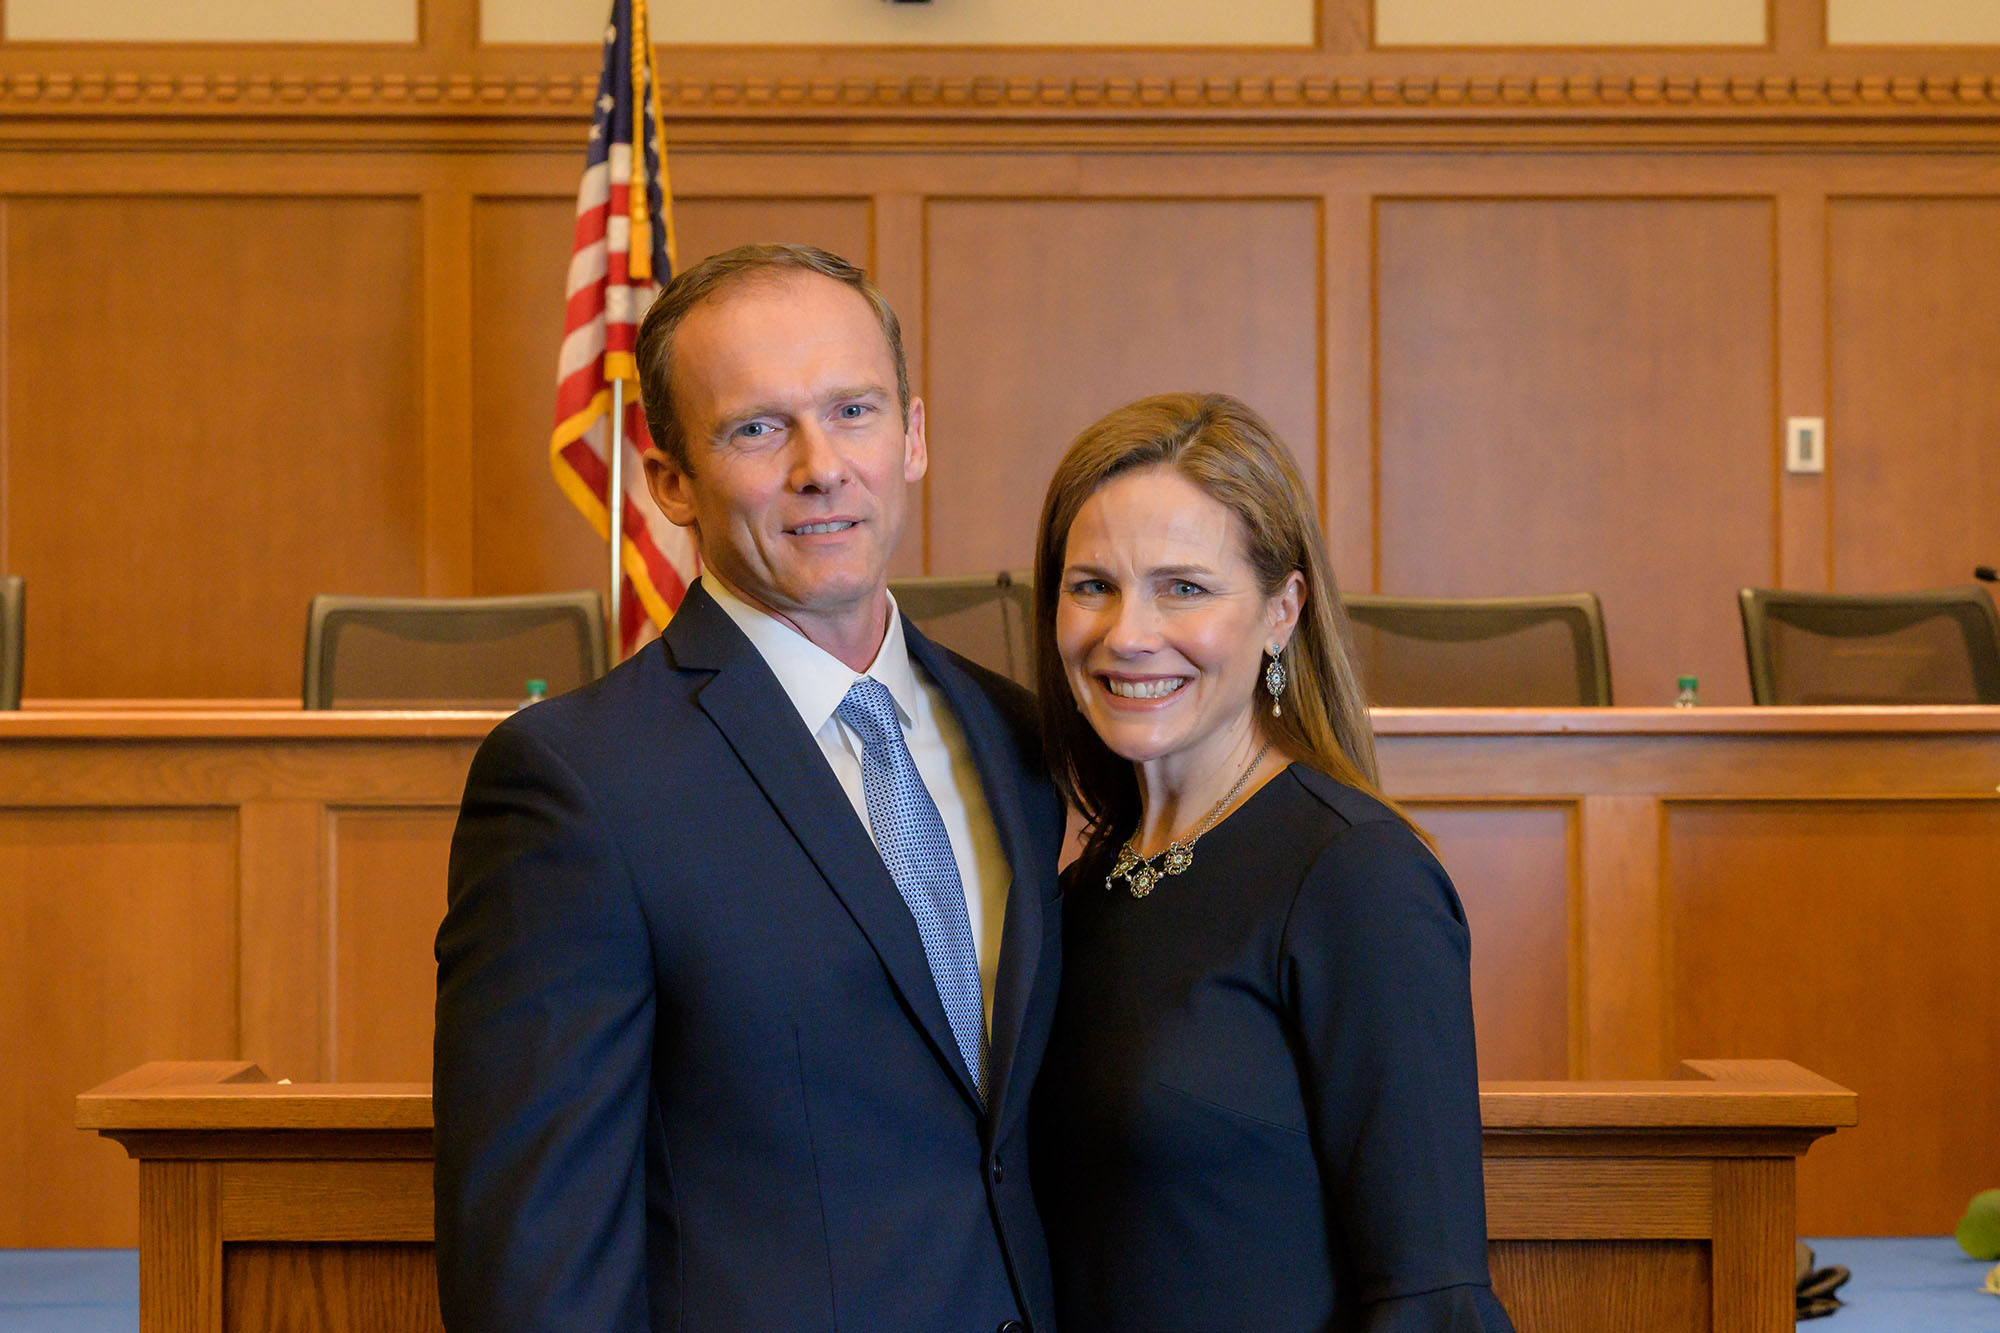 Amy Coney Barrett Family Leave Home Ahead Of Scotus Announcement